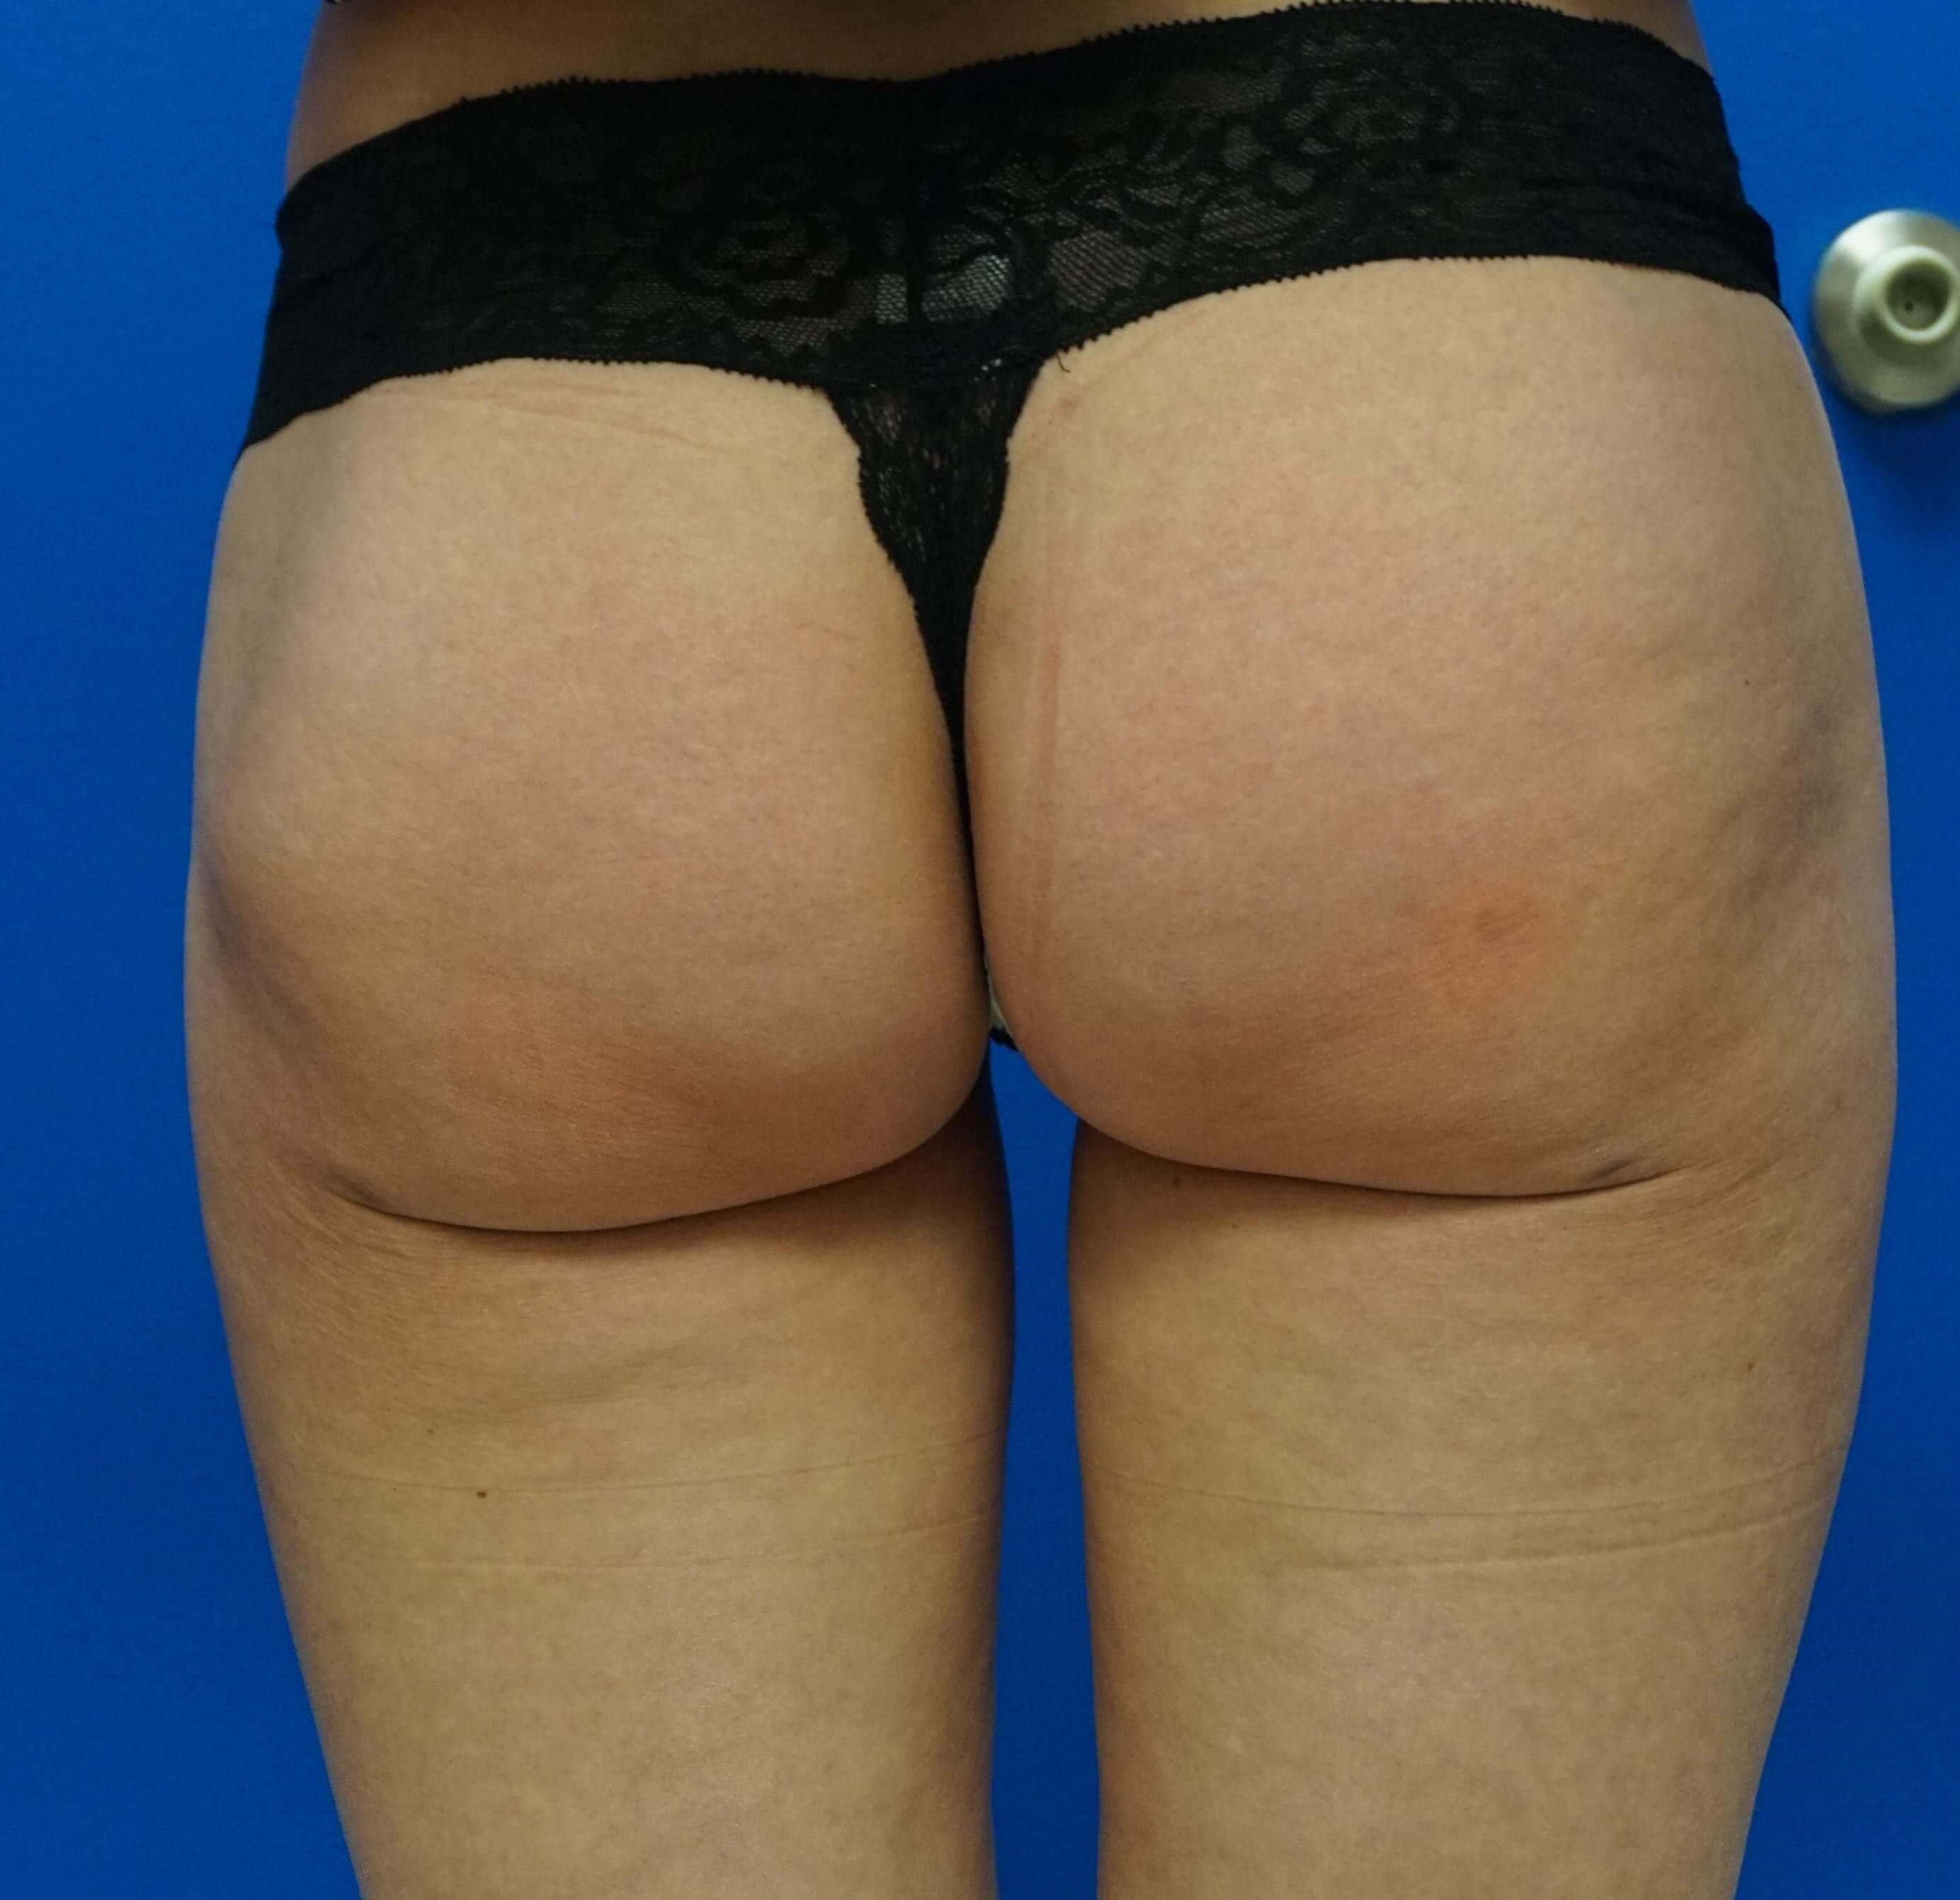 Laser Liposuction of Thighs 5 weeks post